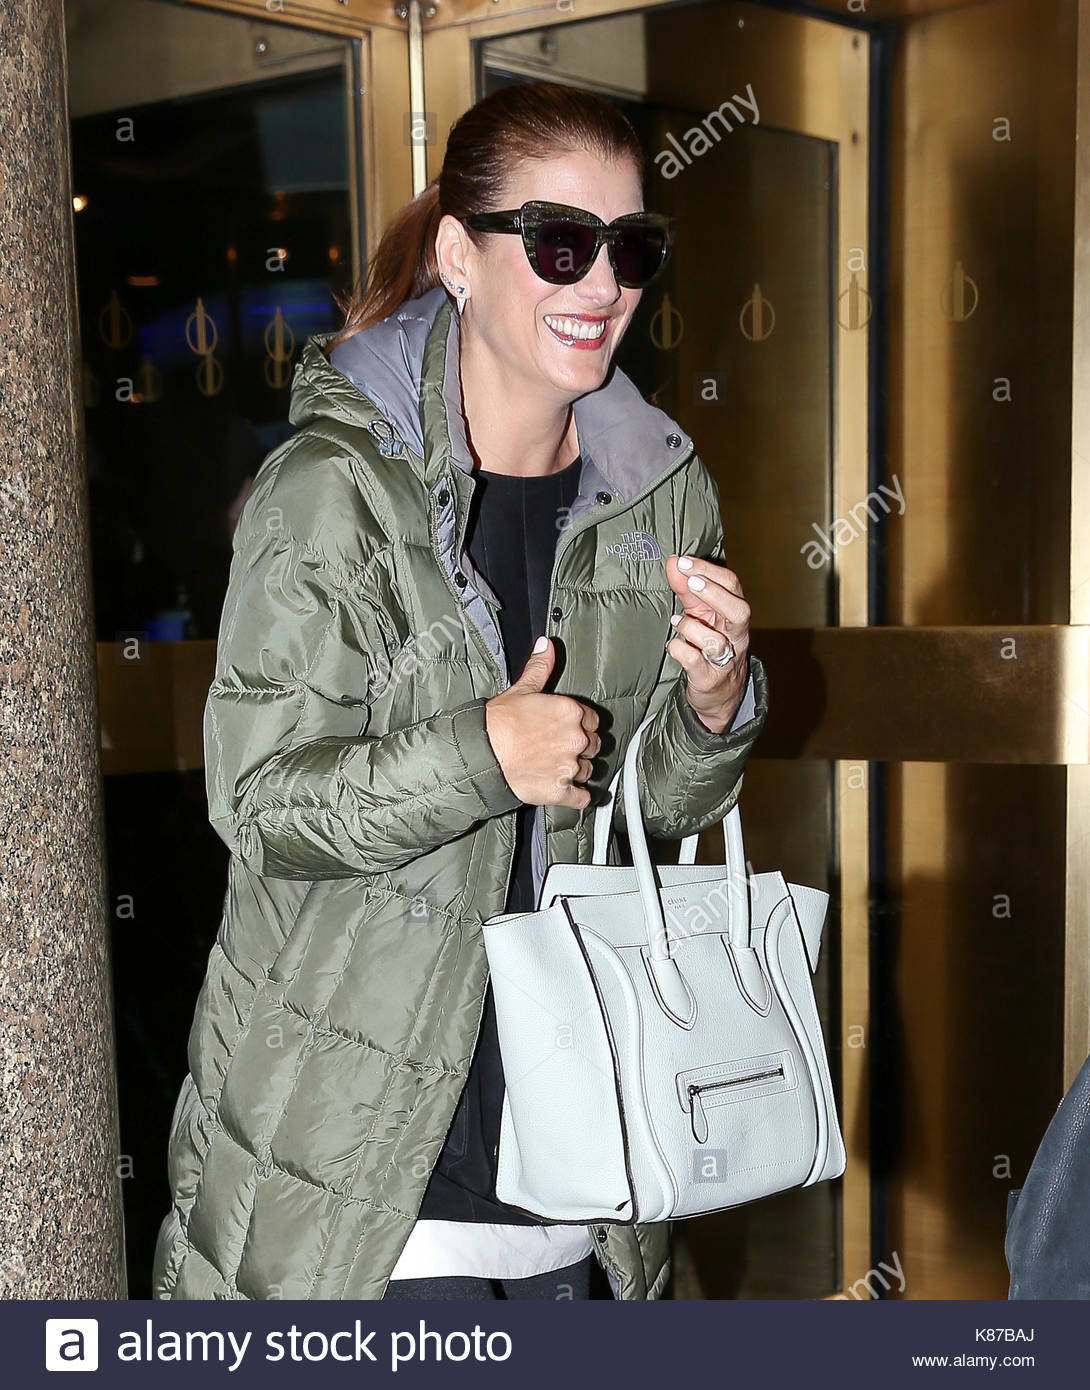 2ecaa07433d Kate Walsh is all smiles while wearing flip flops as she leaves the NBC  studios on a freezing cold day in New York City.